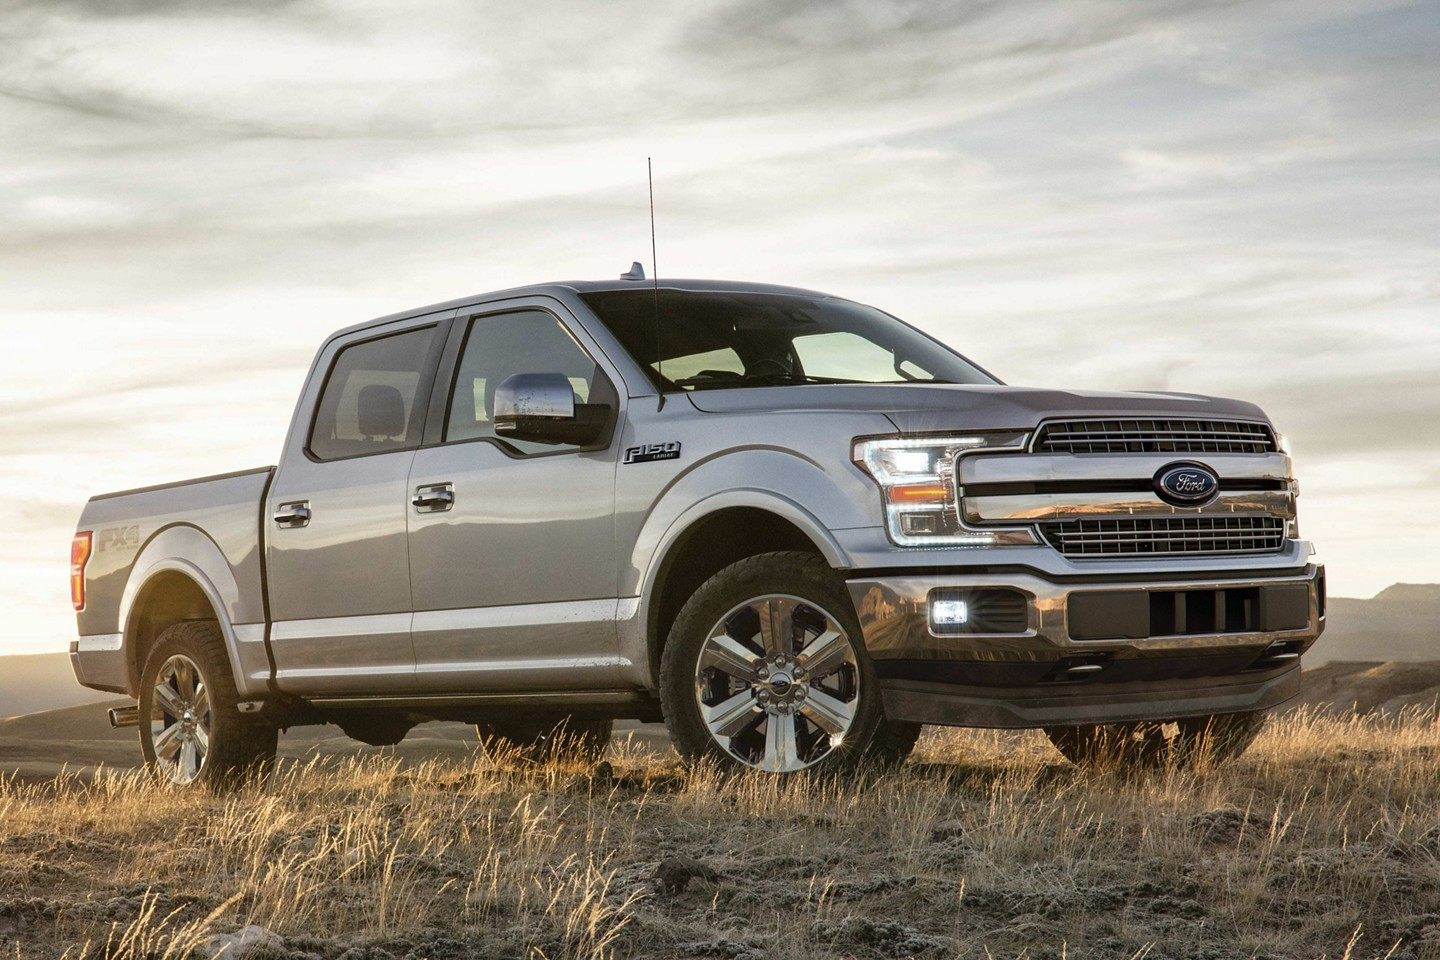 2019 Ford F-150 Silver Exterior Side View Picture.jpeg